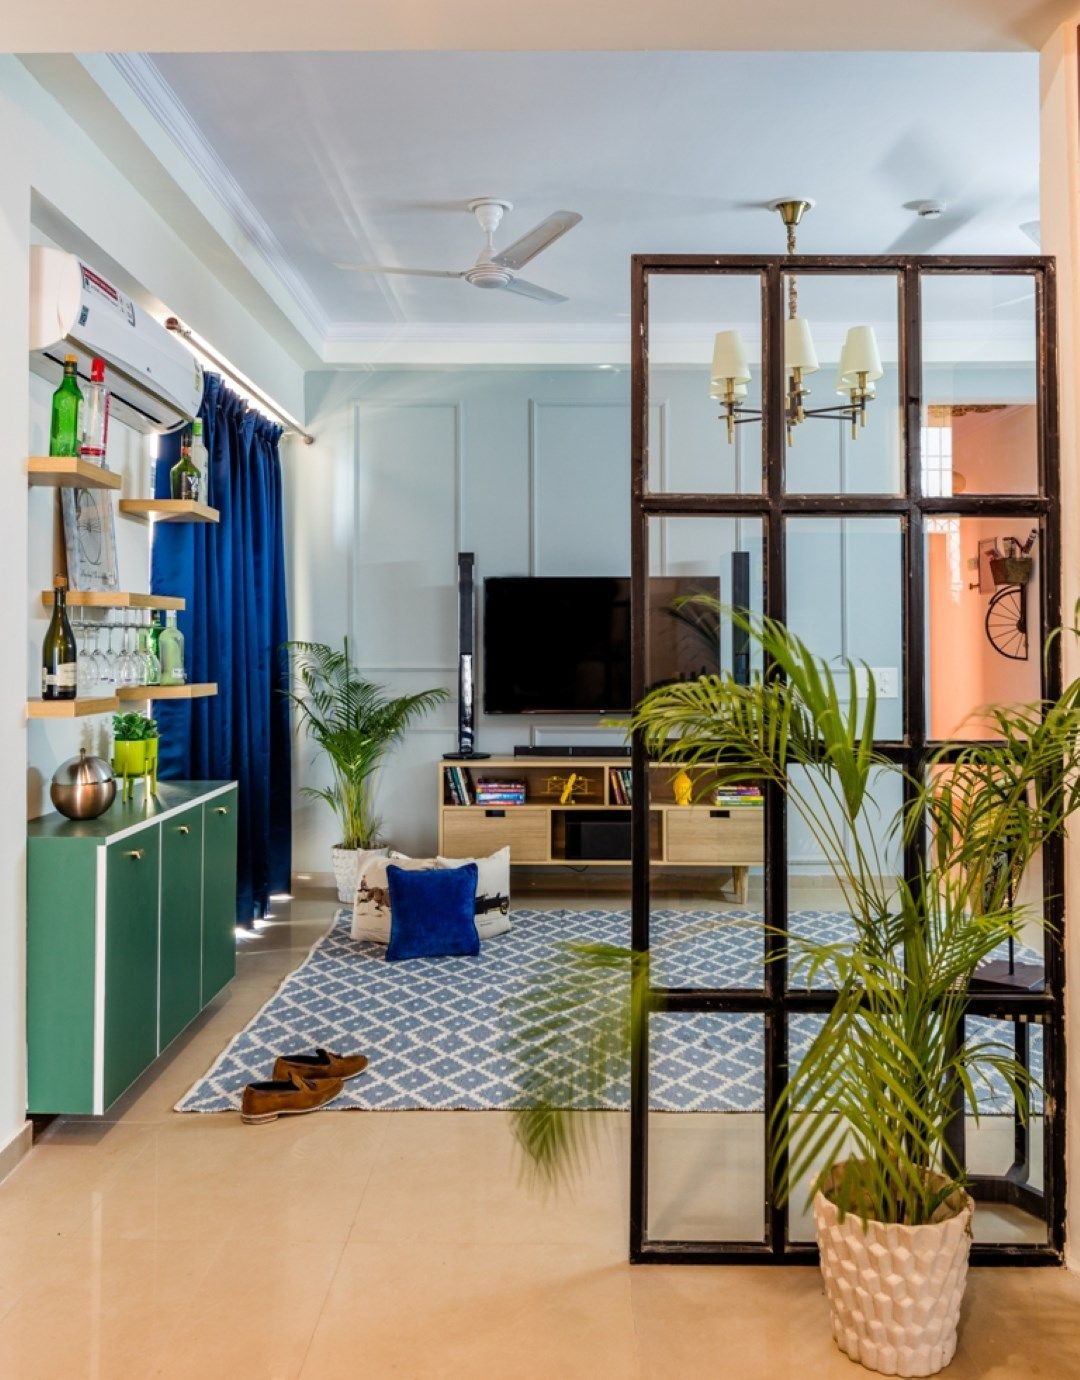 A Calm And Beautiful Home In The Busy Noida City Amusing Interiors The Architects Diary Apartment Interior Apartment Interior Design Small Studio Apartment Decorating